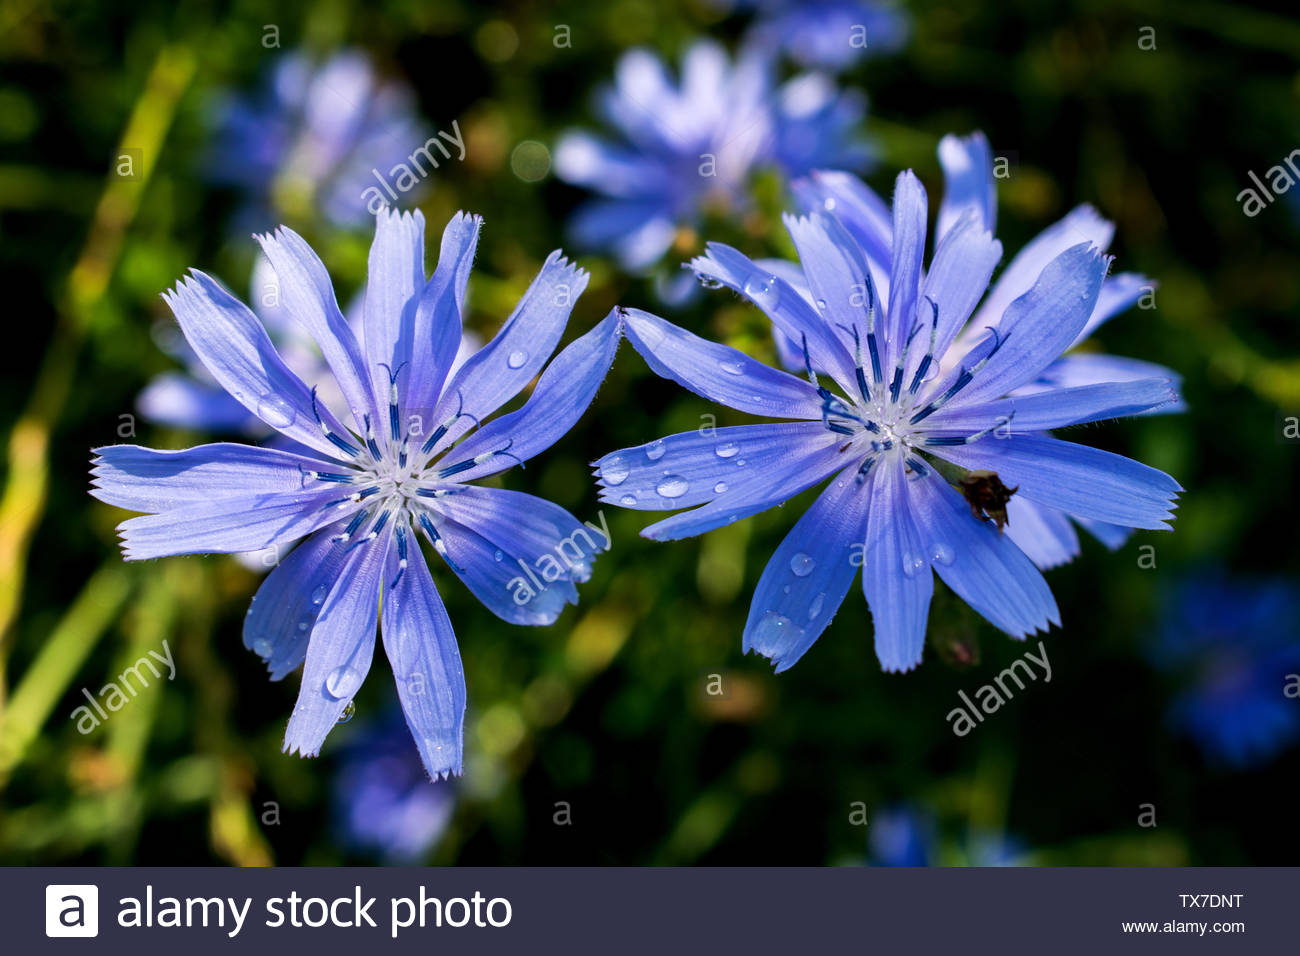 two very beautiful blue flowers that grow in summer on the grasslands. After a rainy day. Invitation, background, ilustration card - Stock Image